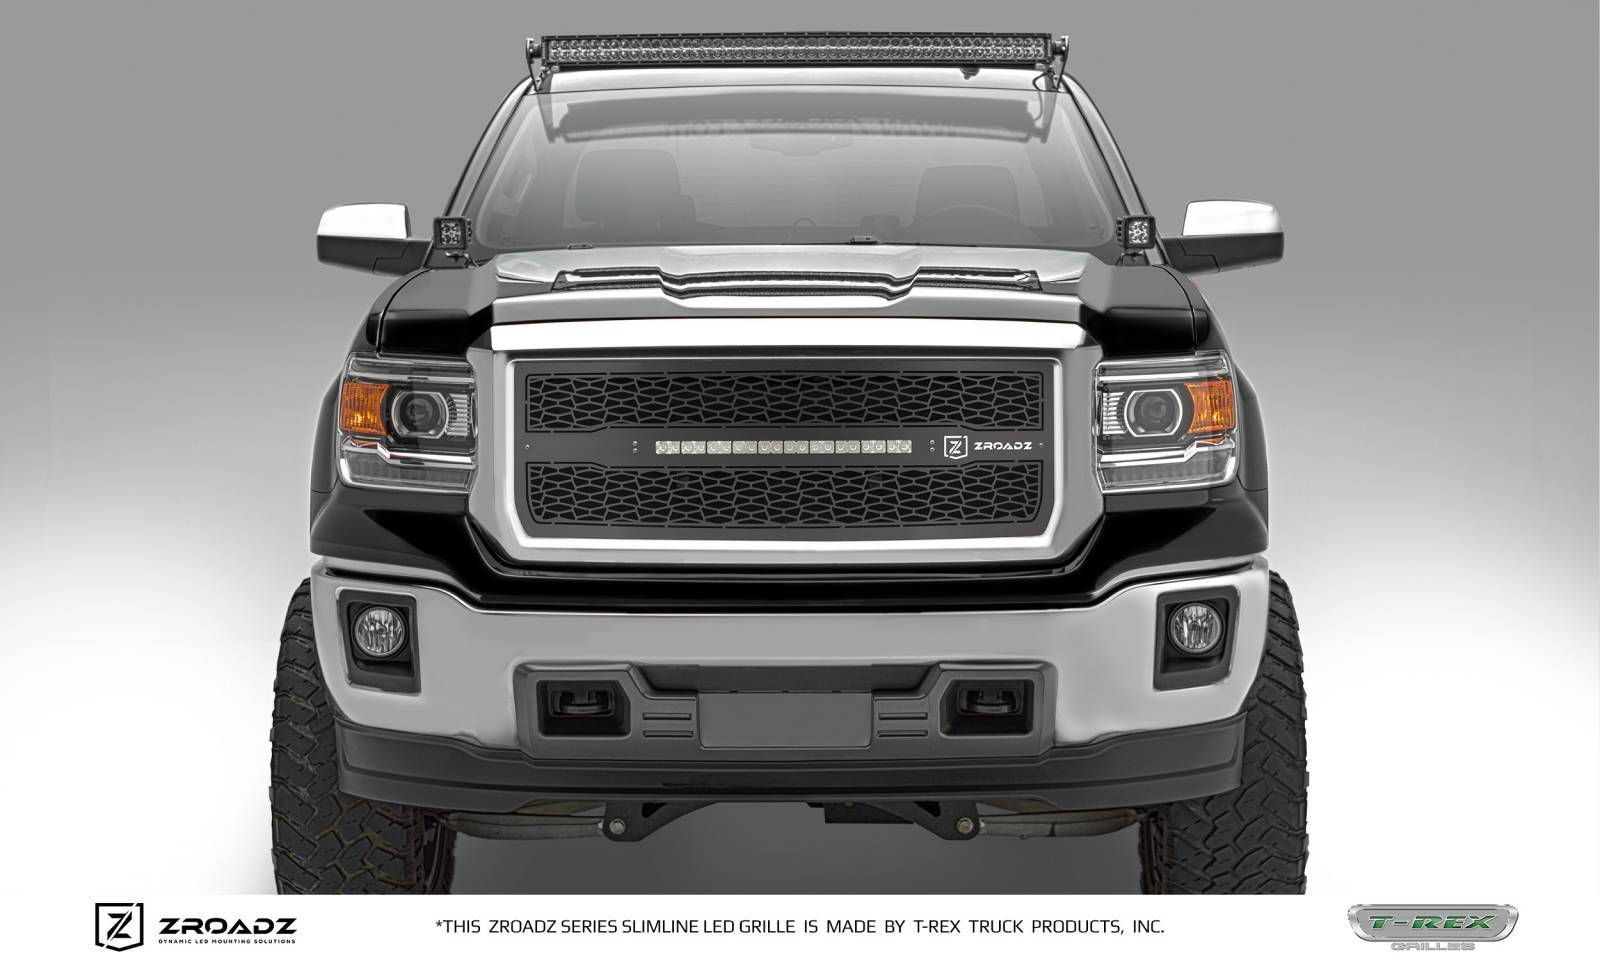 GMC Sierra 1500 - ZROADZ Series - Main Insert - Grille w/ One 20 Inch Slim Line Single Row LED Light Bar - Includes Universal Wiring Harness - Part# Z312081